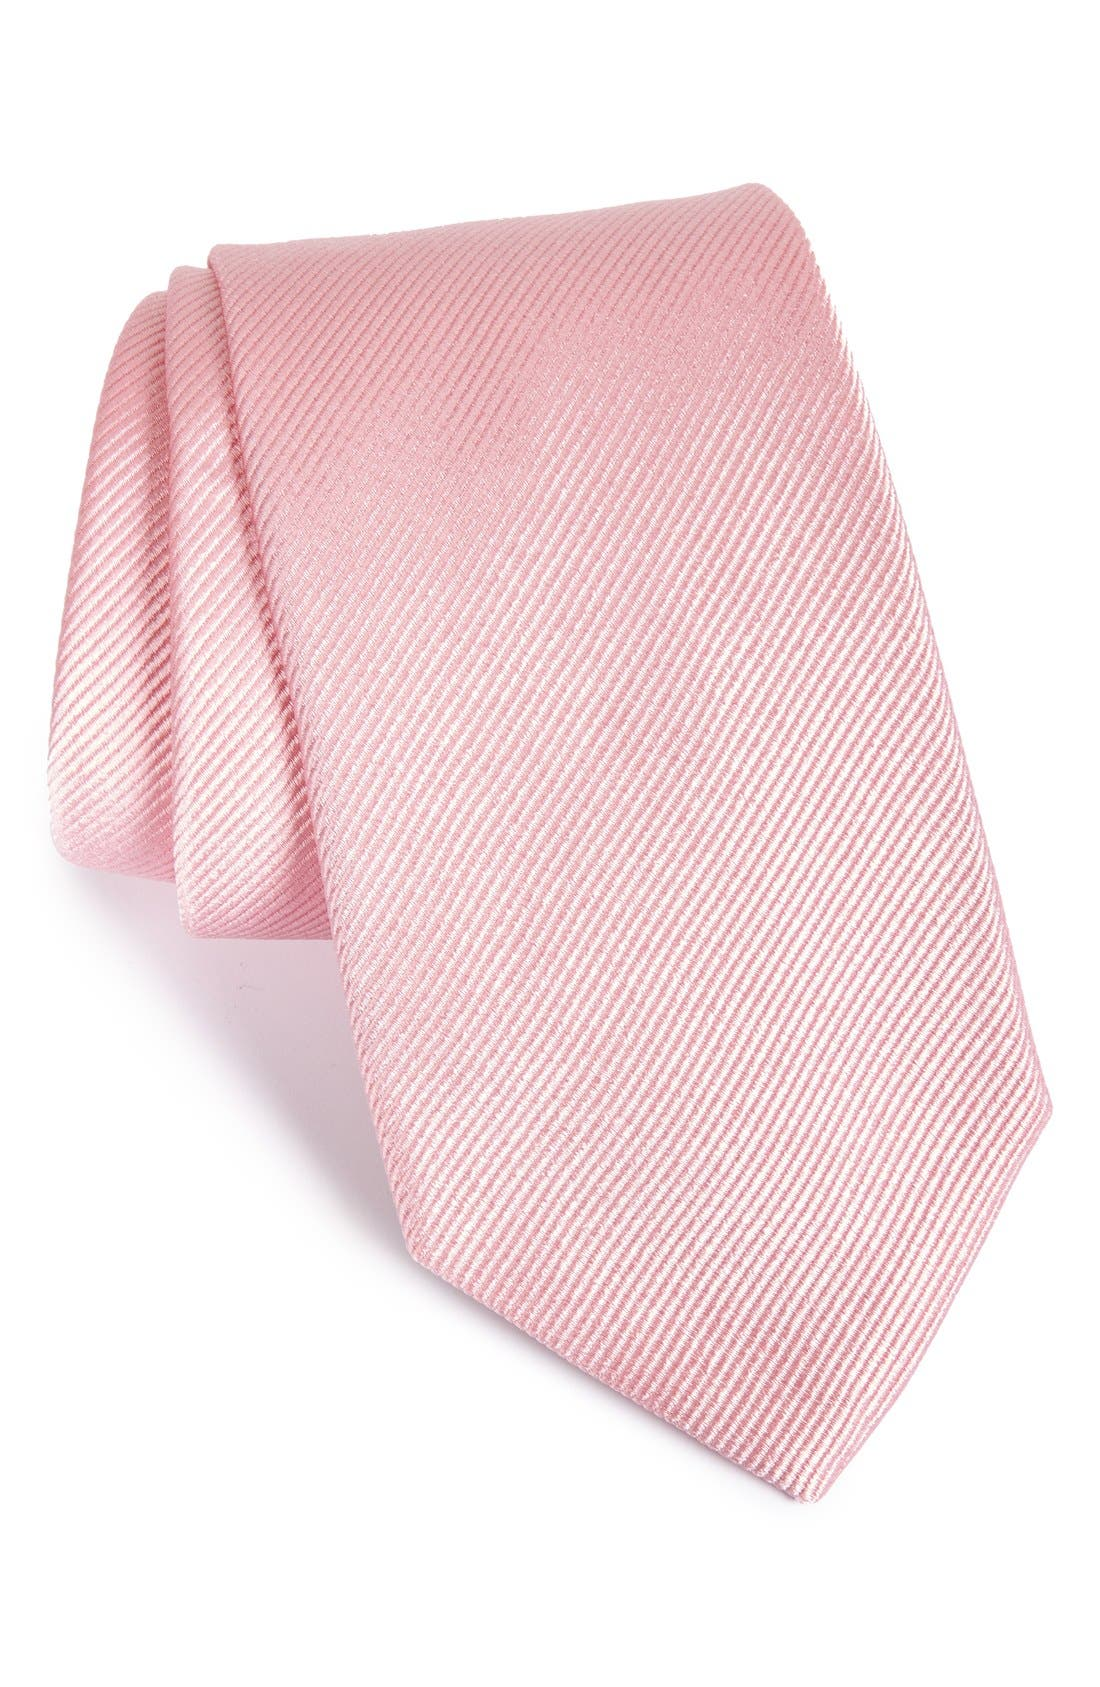 Solid Silk Tie,                         Main,                         color, Pink